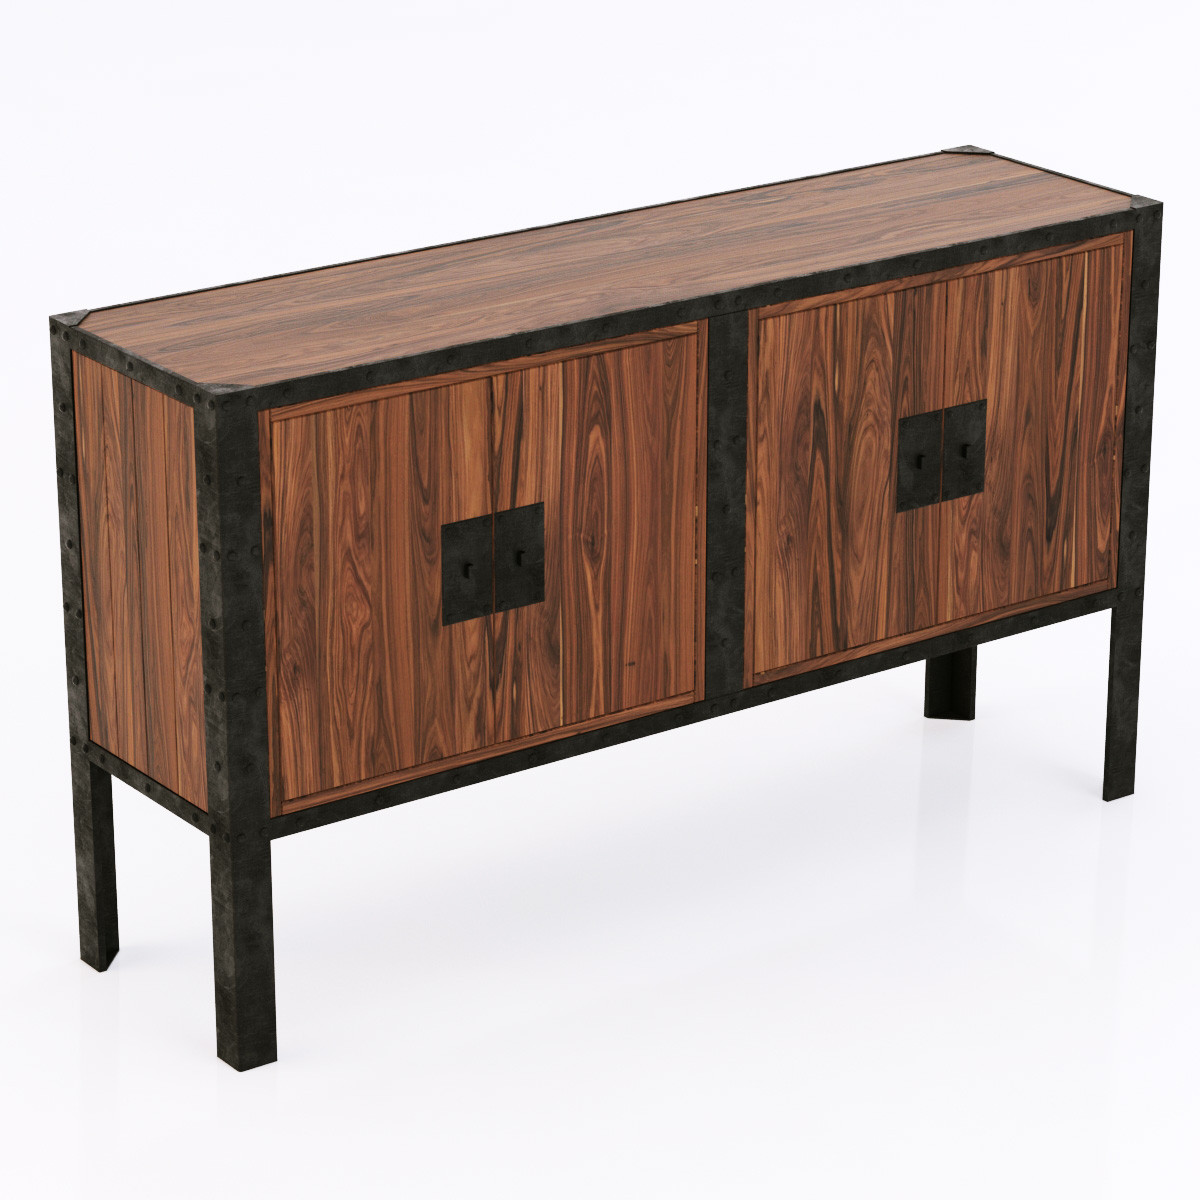 Dovetail furniture max for Dovetail furniture